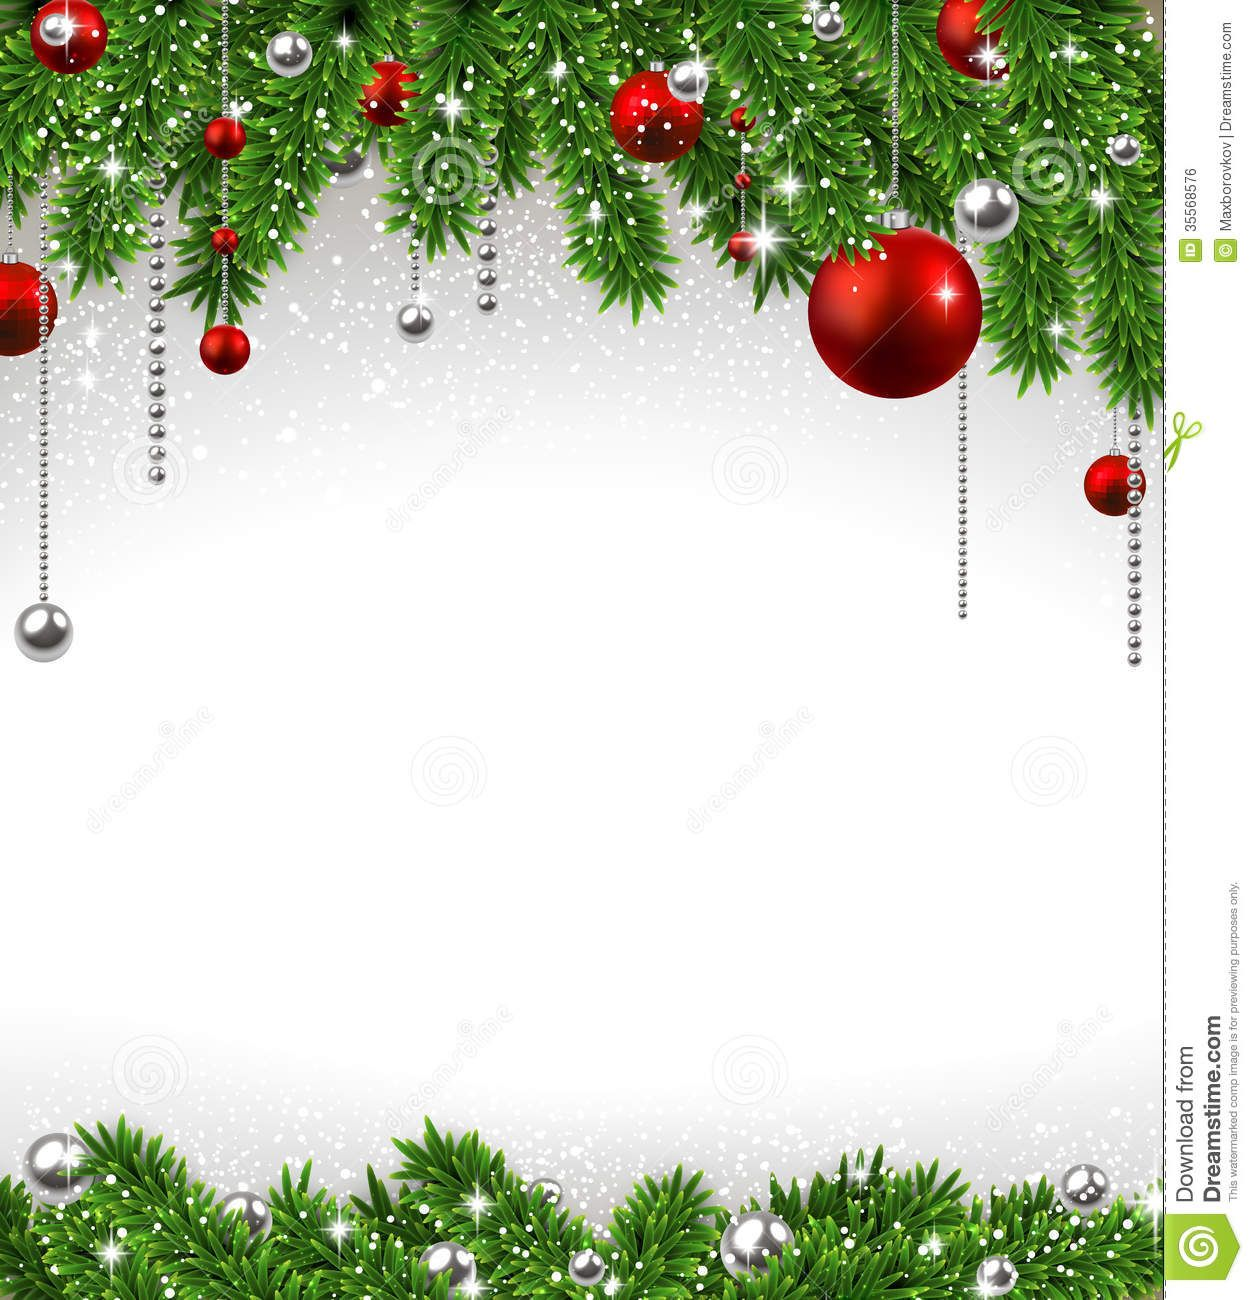 Free christmas vectors download christmas vector images and art free - Christmas Background With Fir Branches And Balls Royalty Free